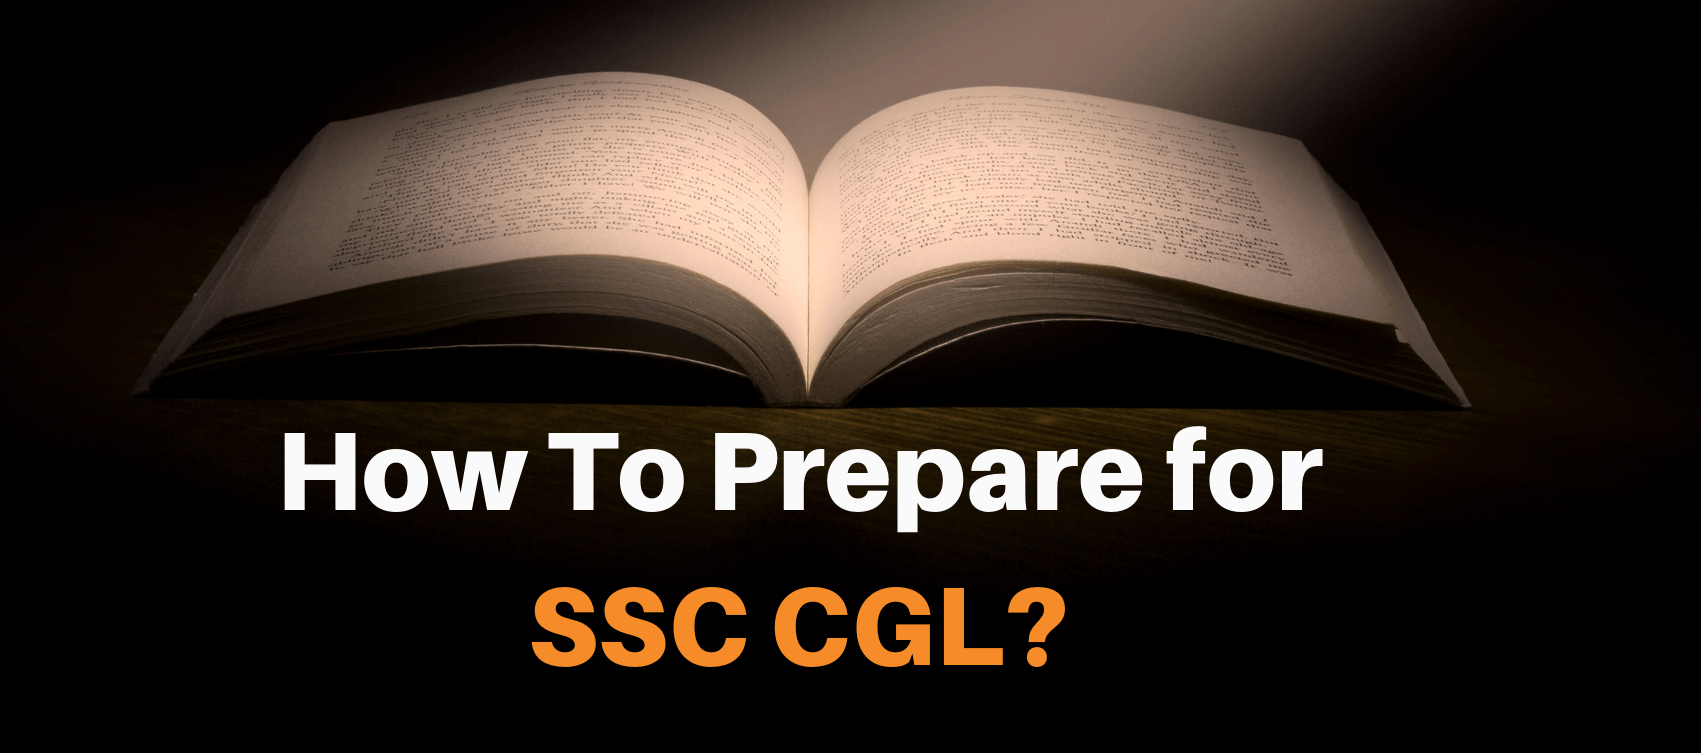 SSC-CGL-Preparation